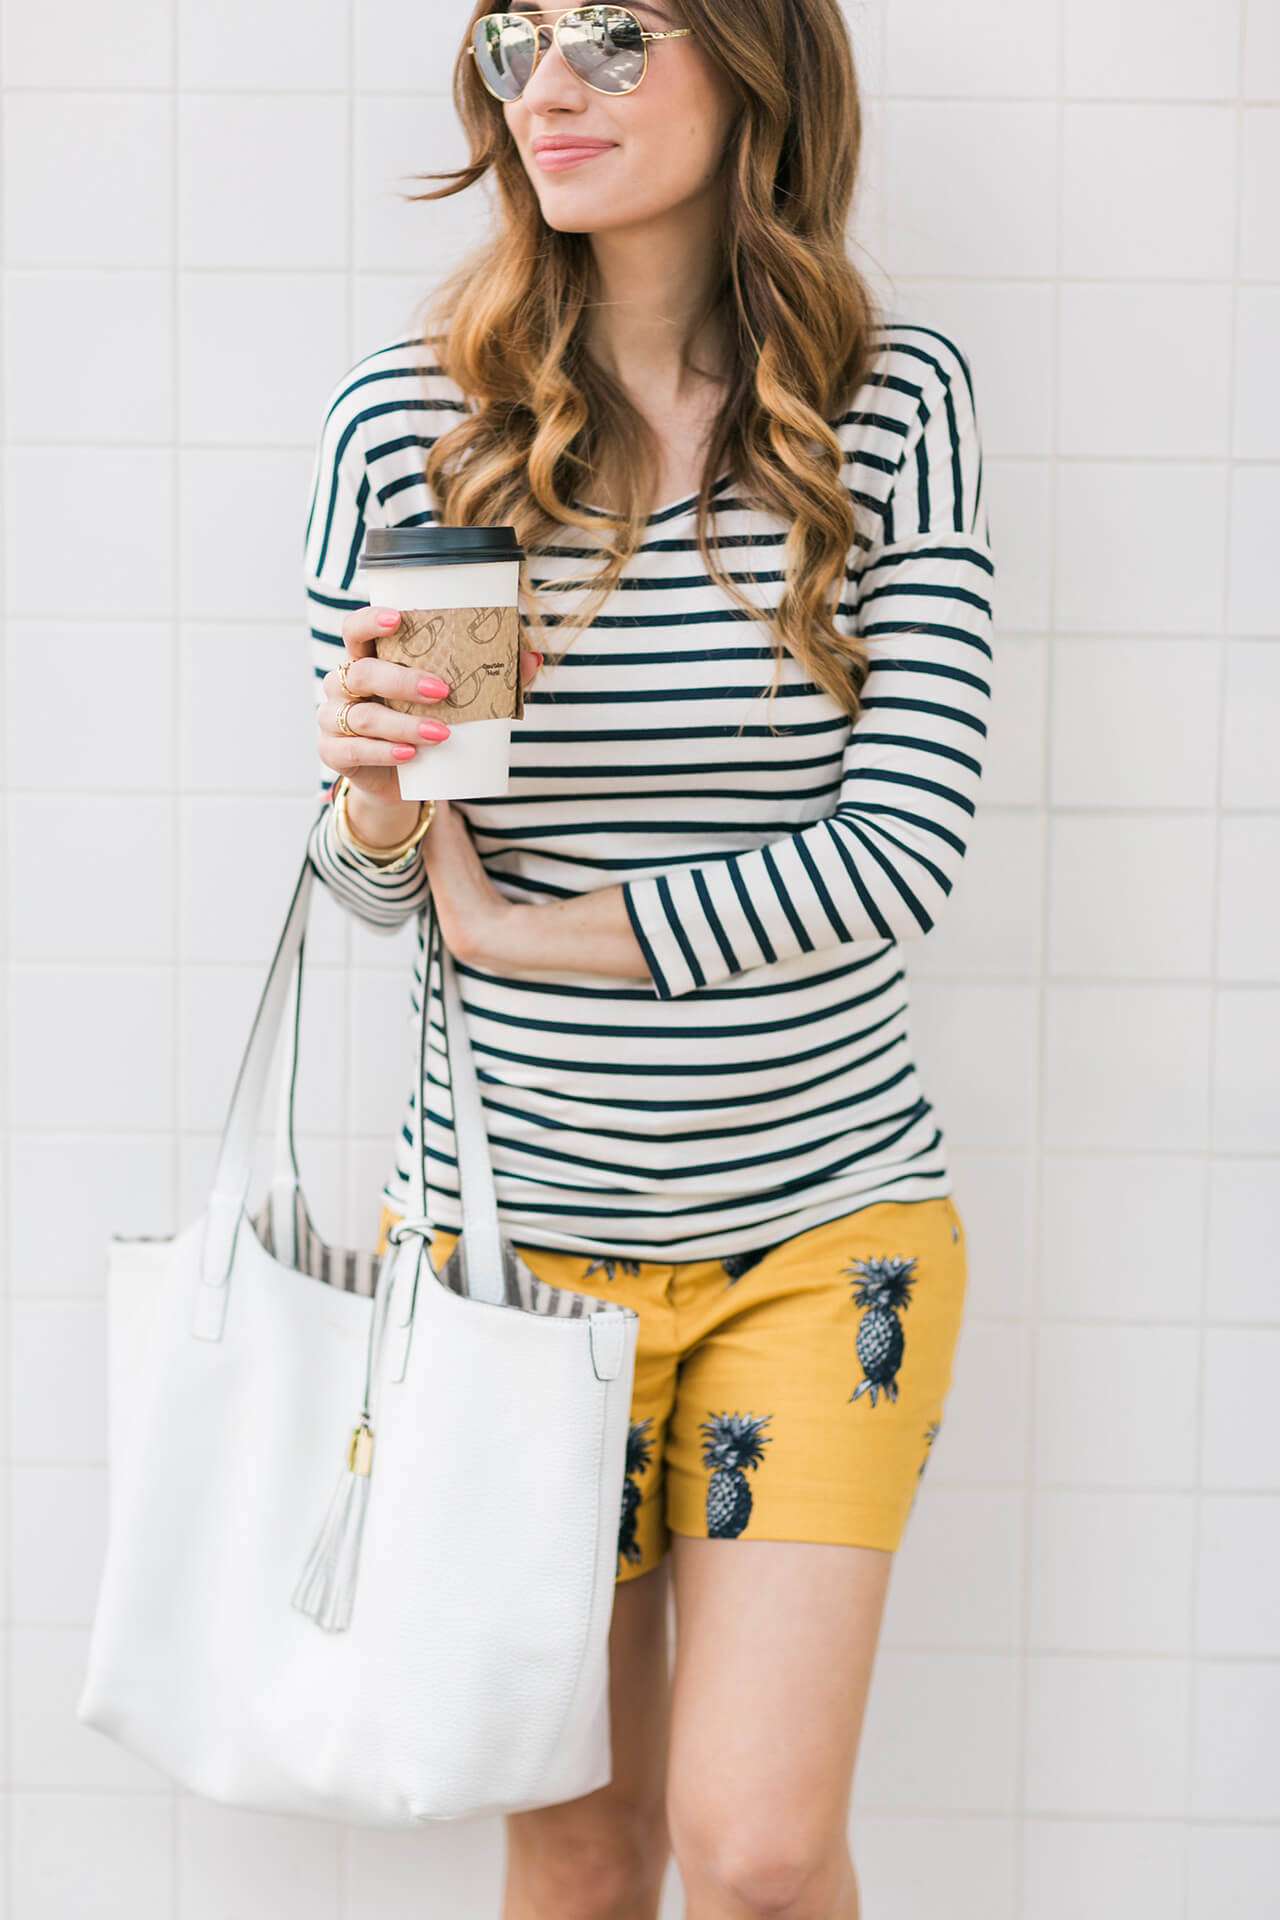 striped top with pineapple shorts outfit